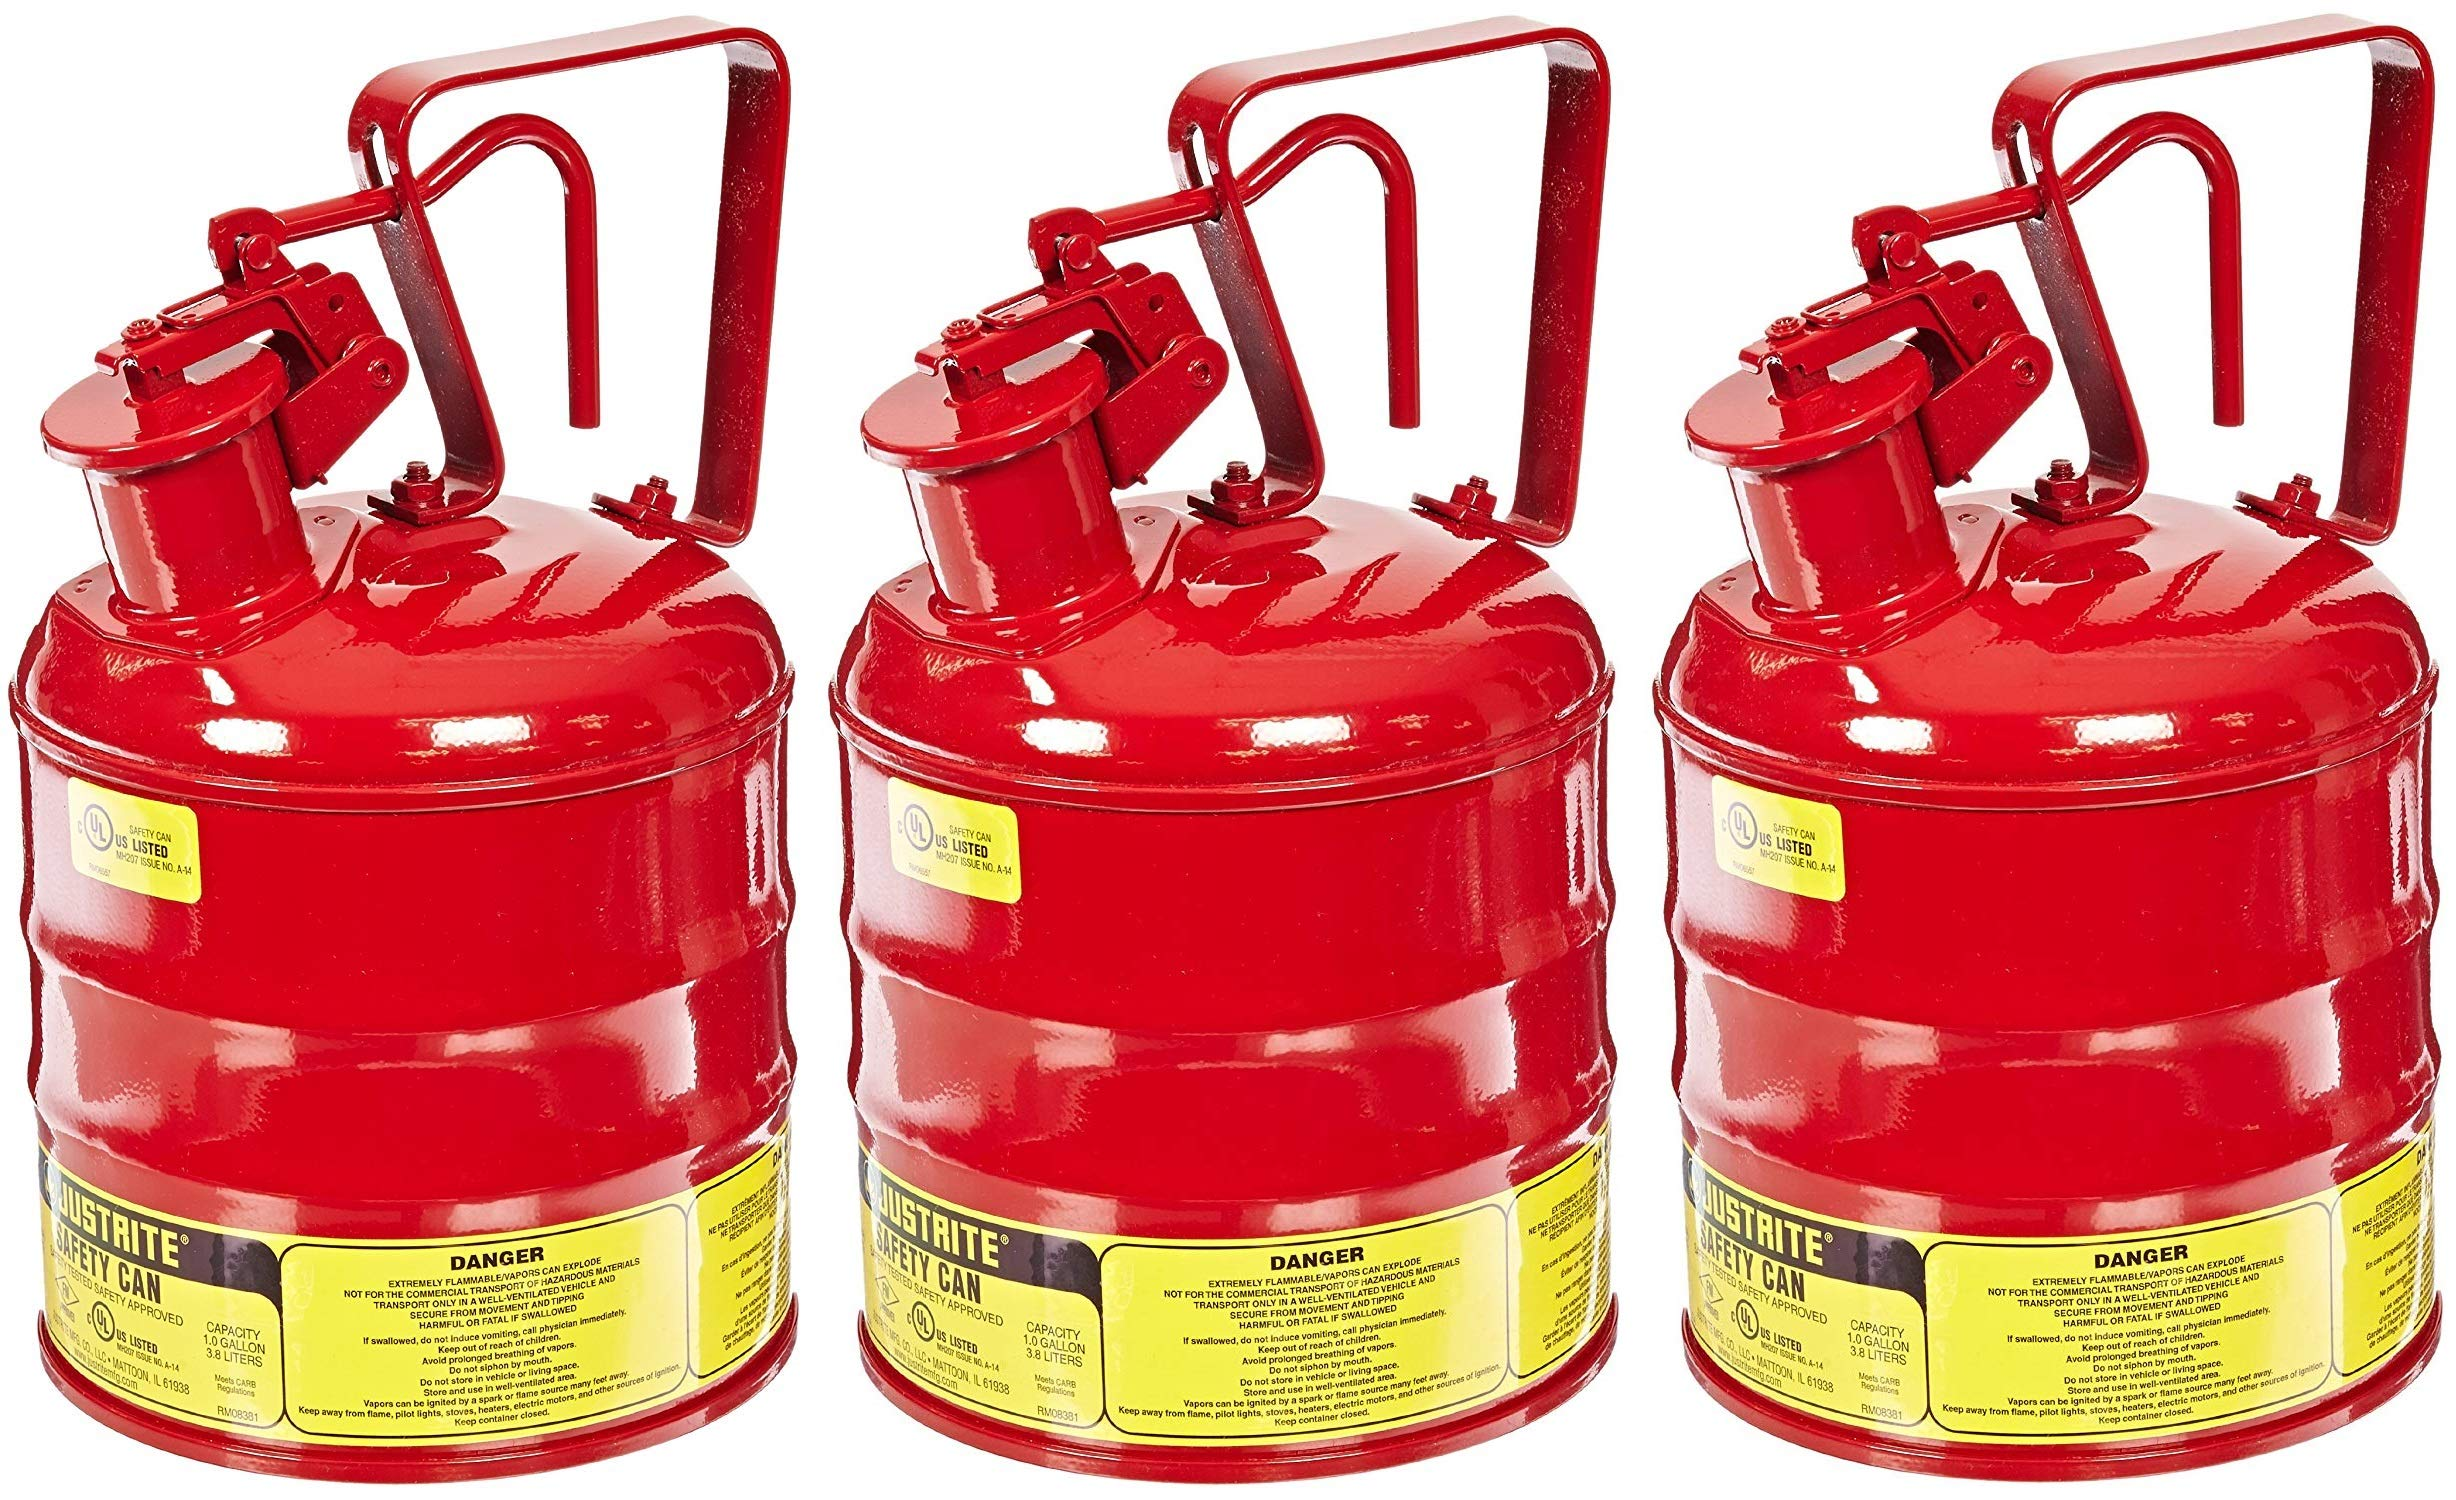 Justrite 10301 Type I Steel Flammables Safety Can, 4L Capacity, Red (Pack of 3)